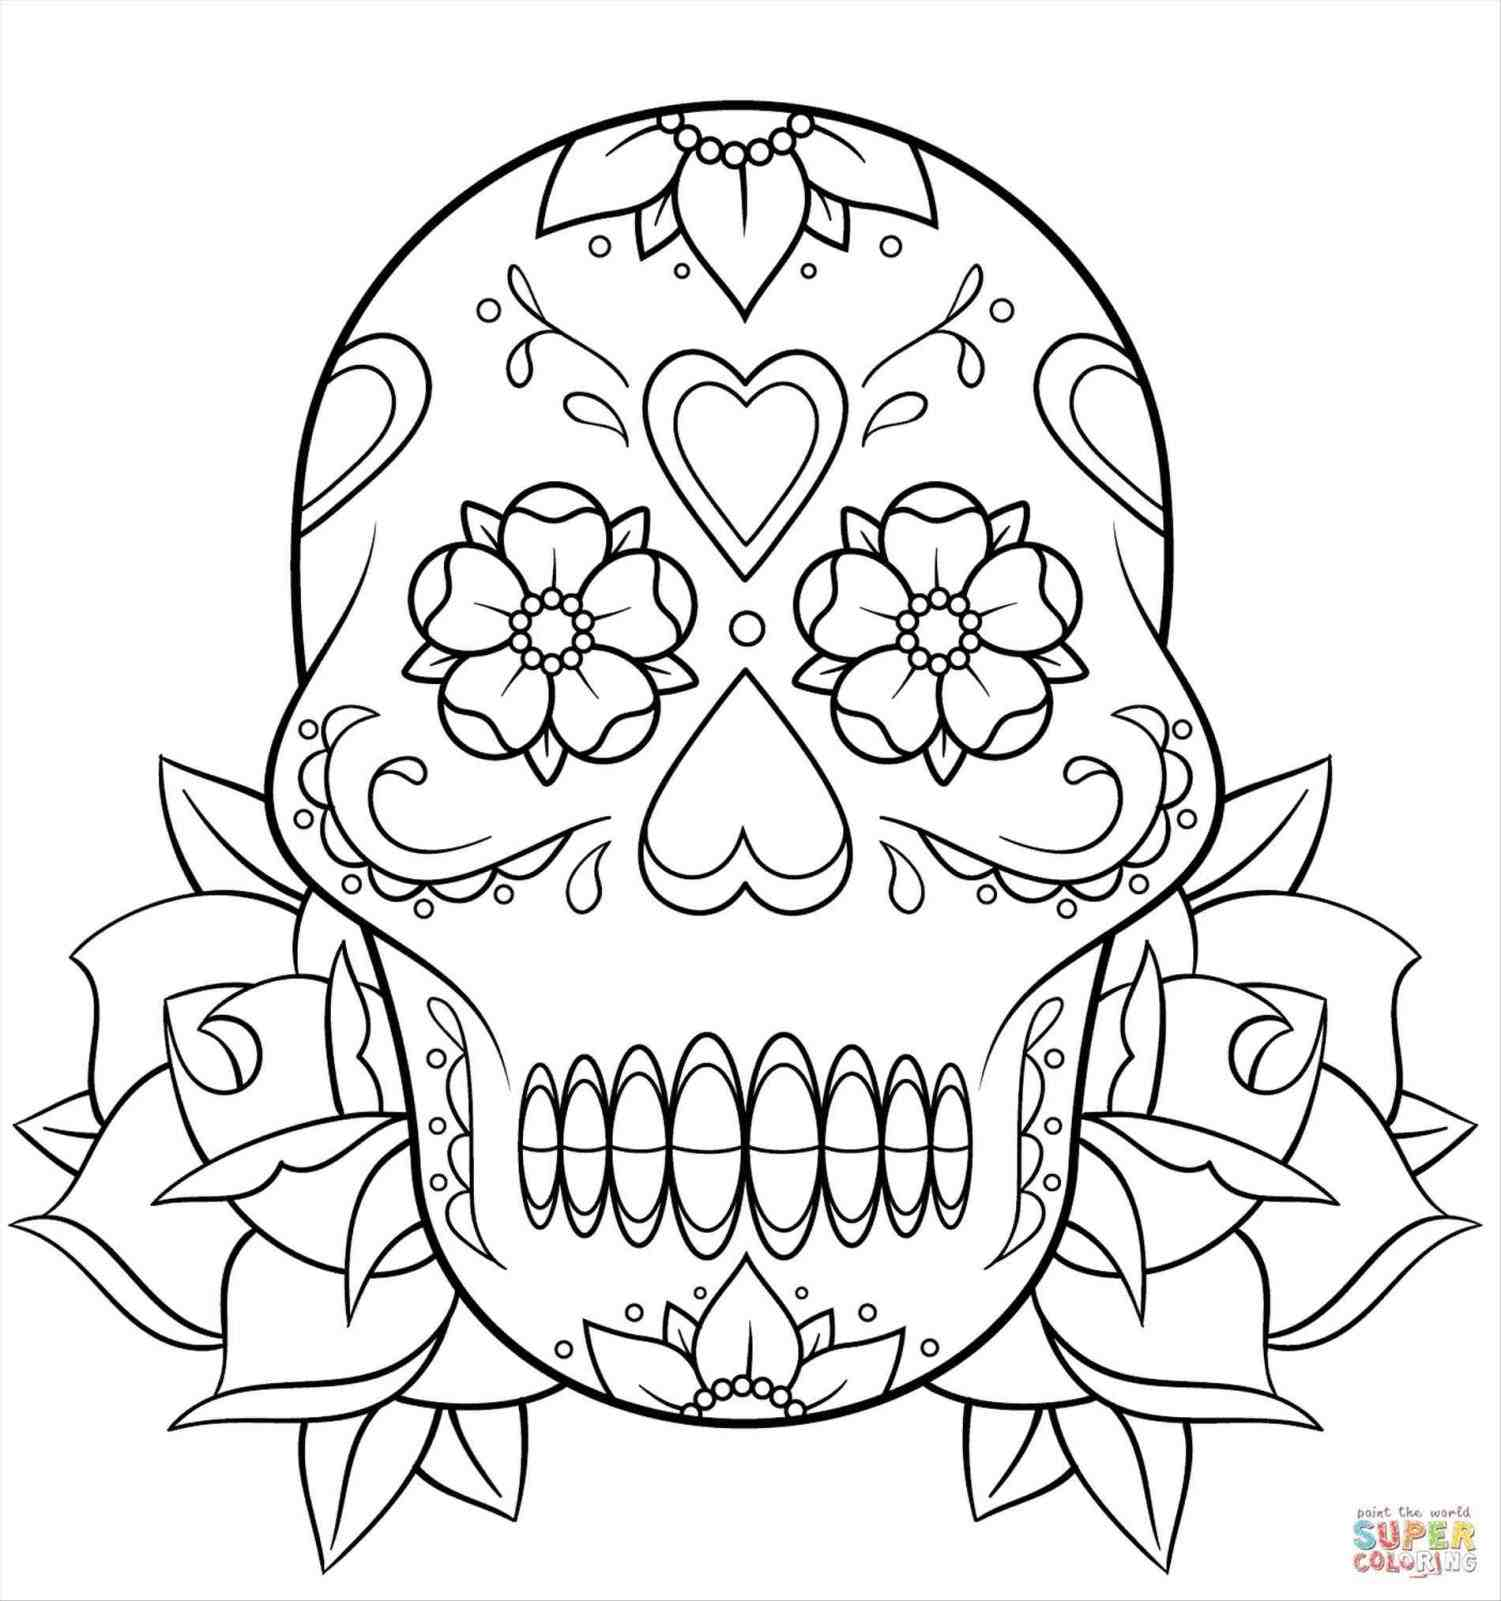 1501x1601 Skull Rose Drawing Outline Tattoos Template Small Tattoo Black